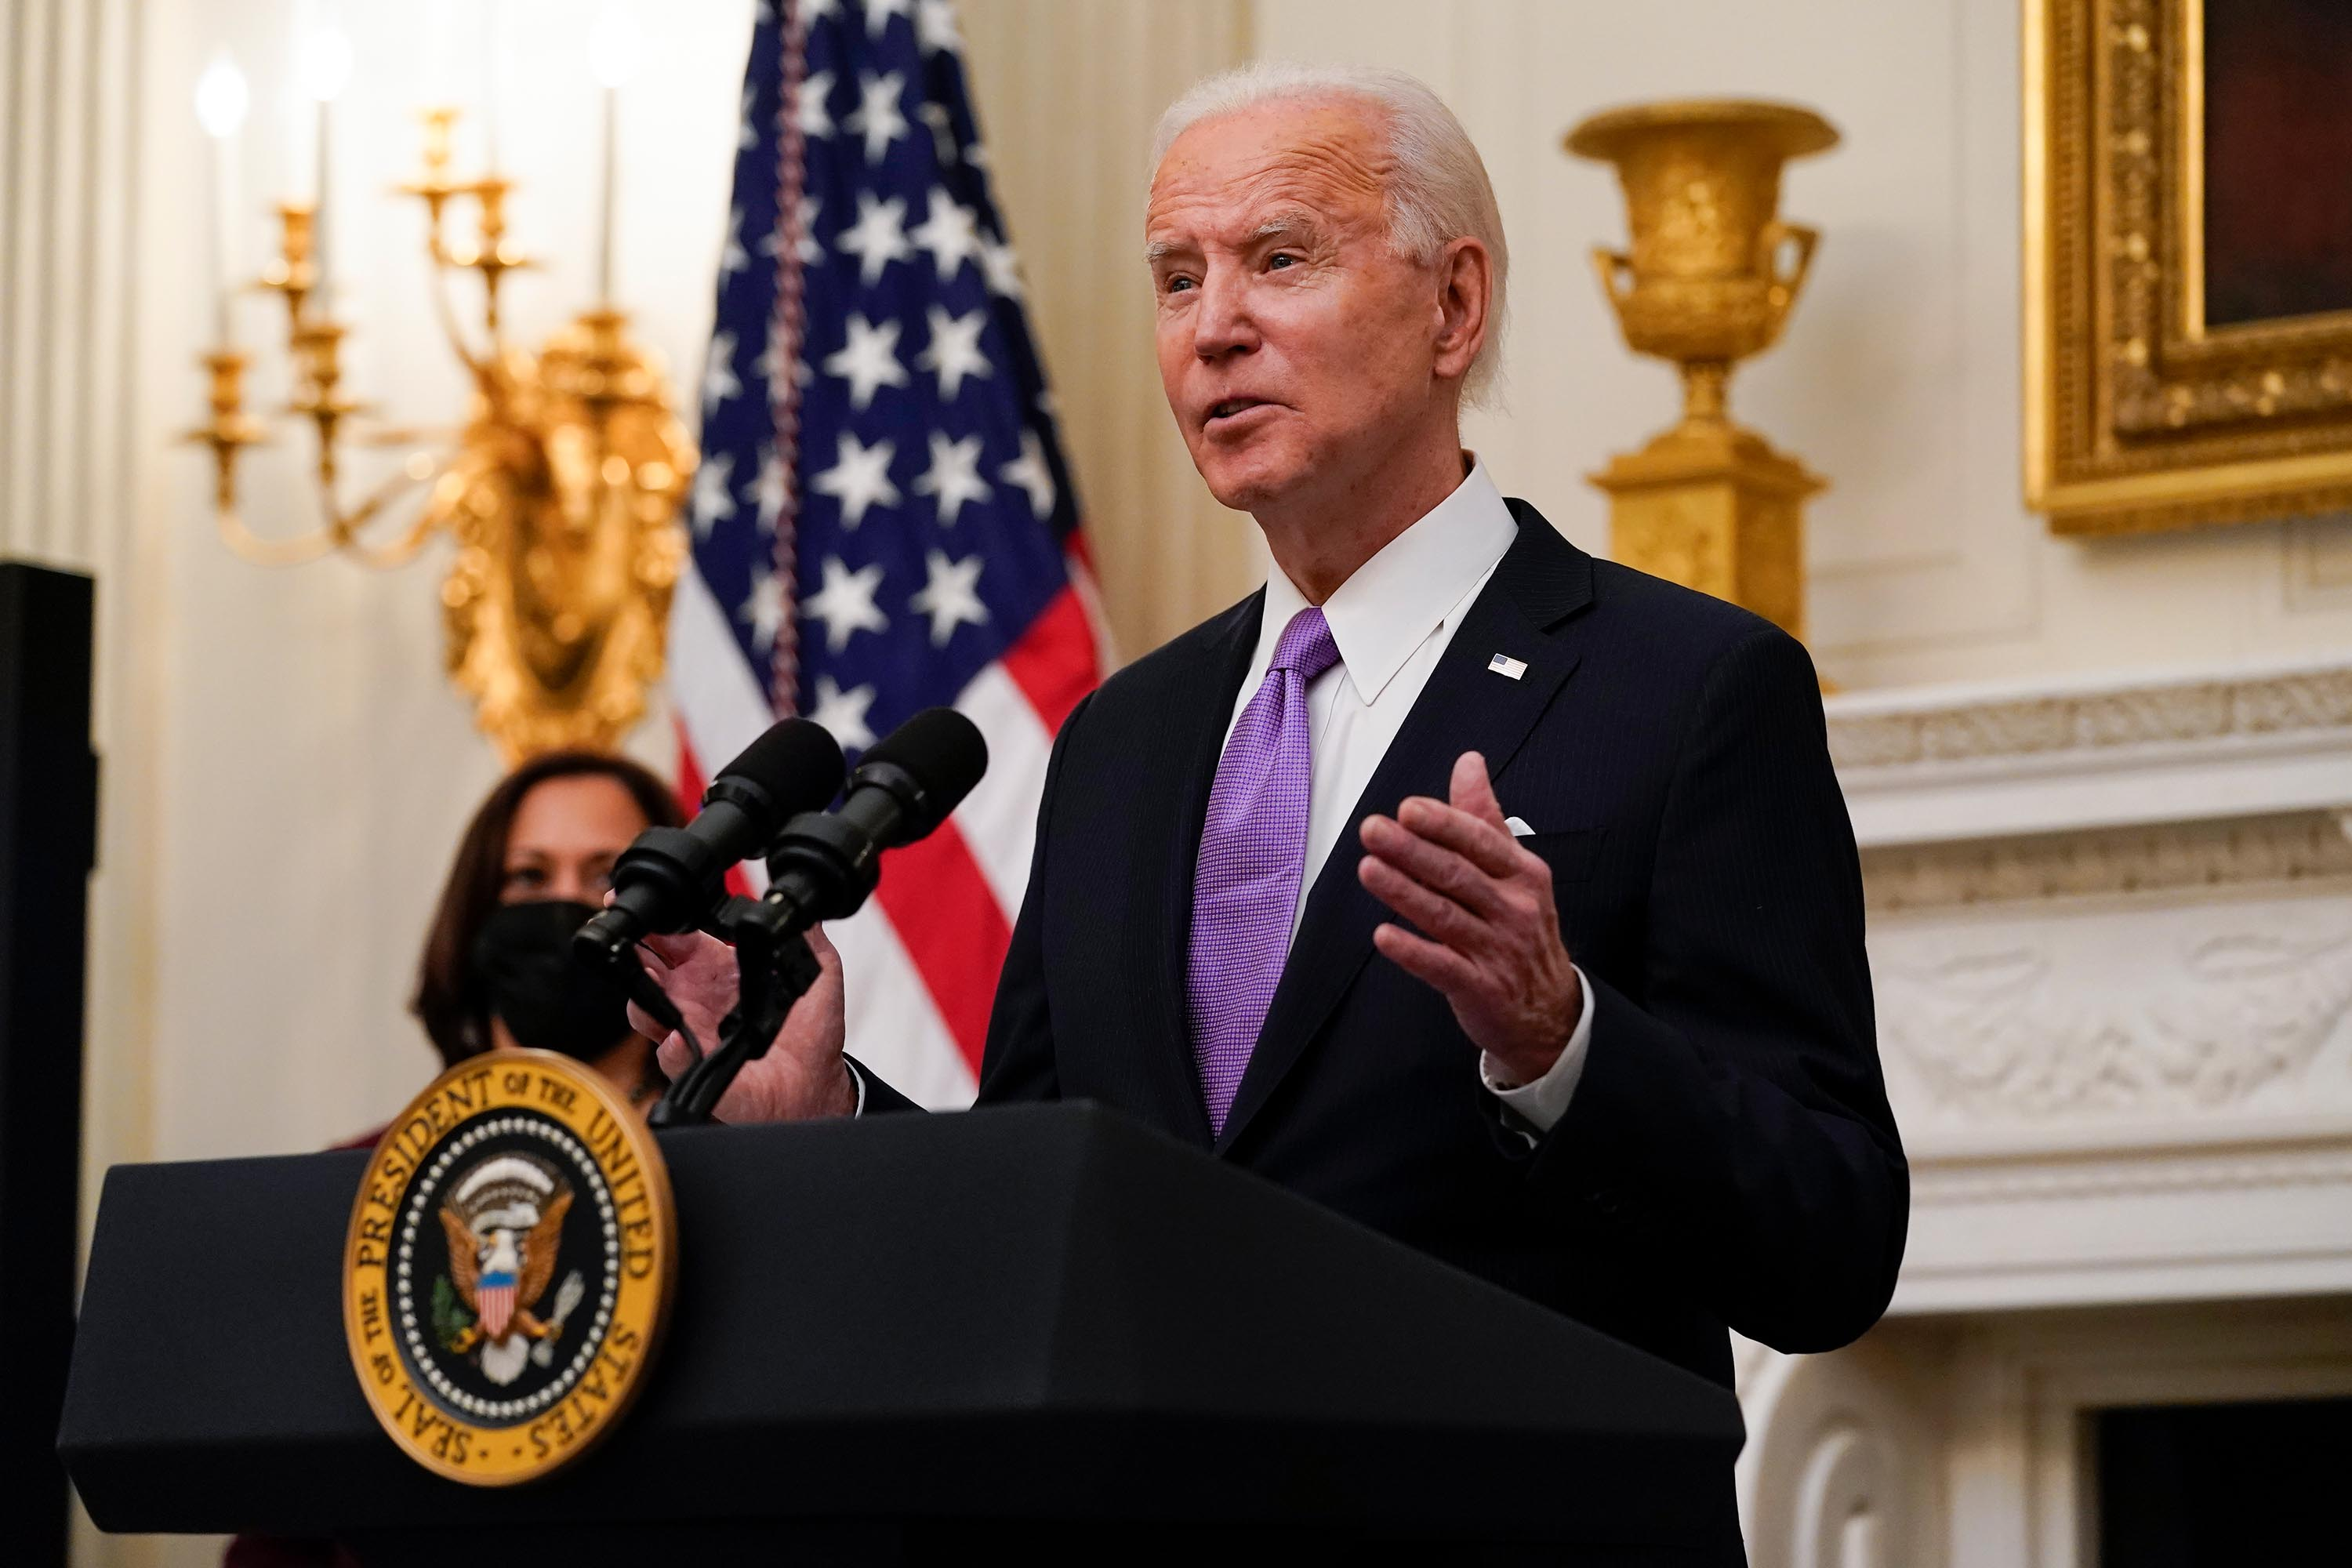 Fact check: Biden falsely claims journalists had all said his vaccination goal was impossible to meet